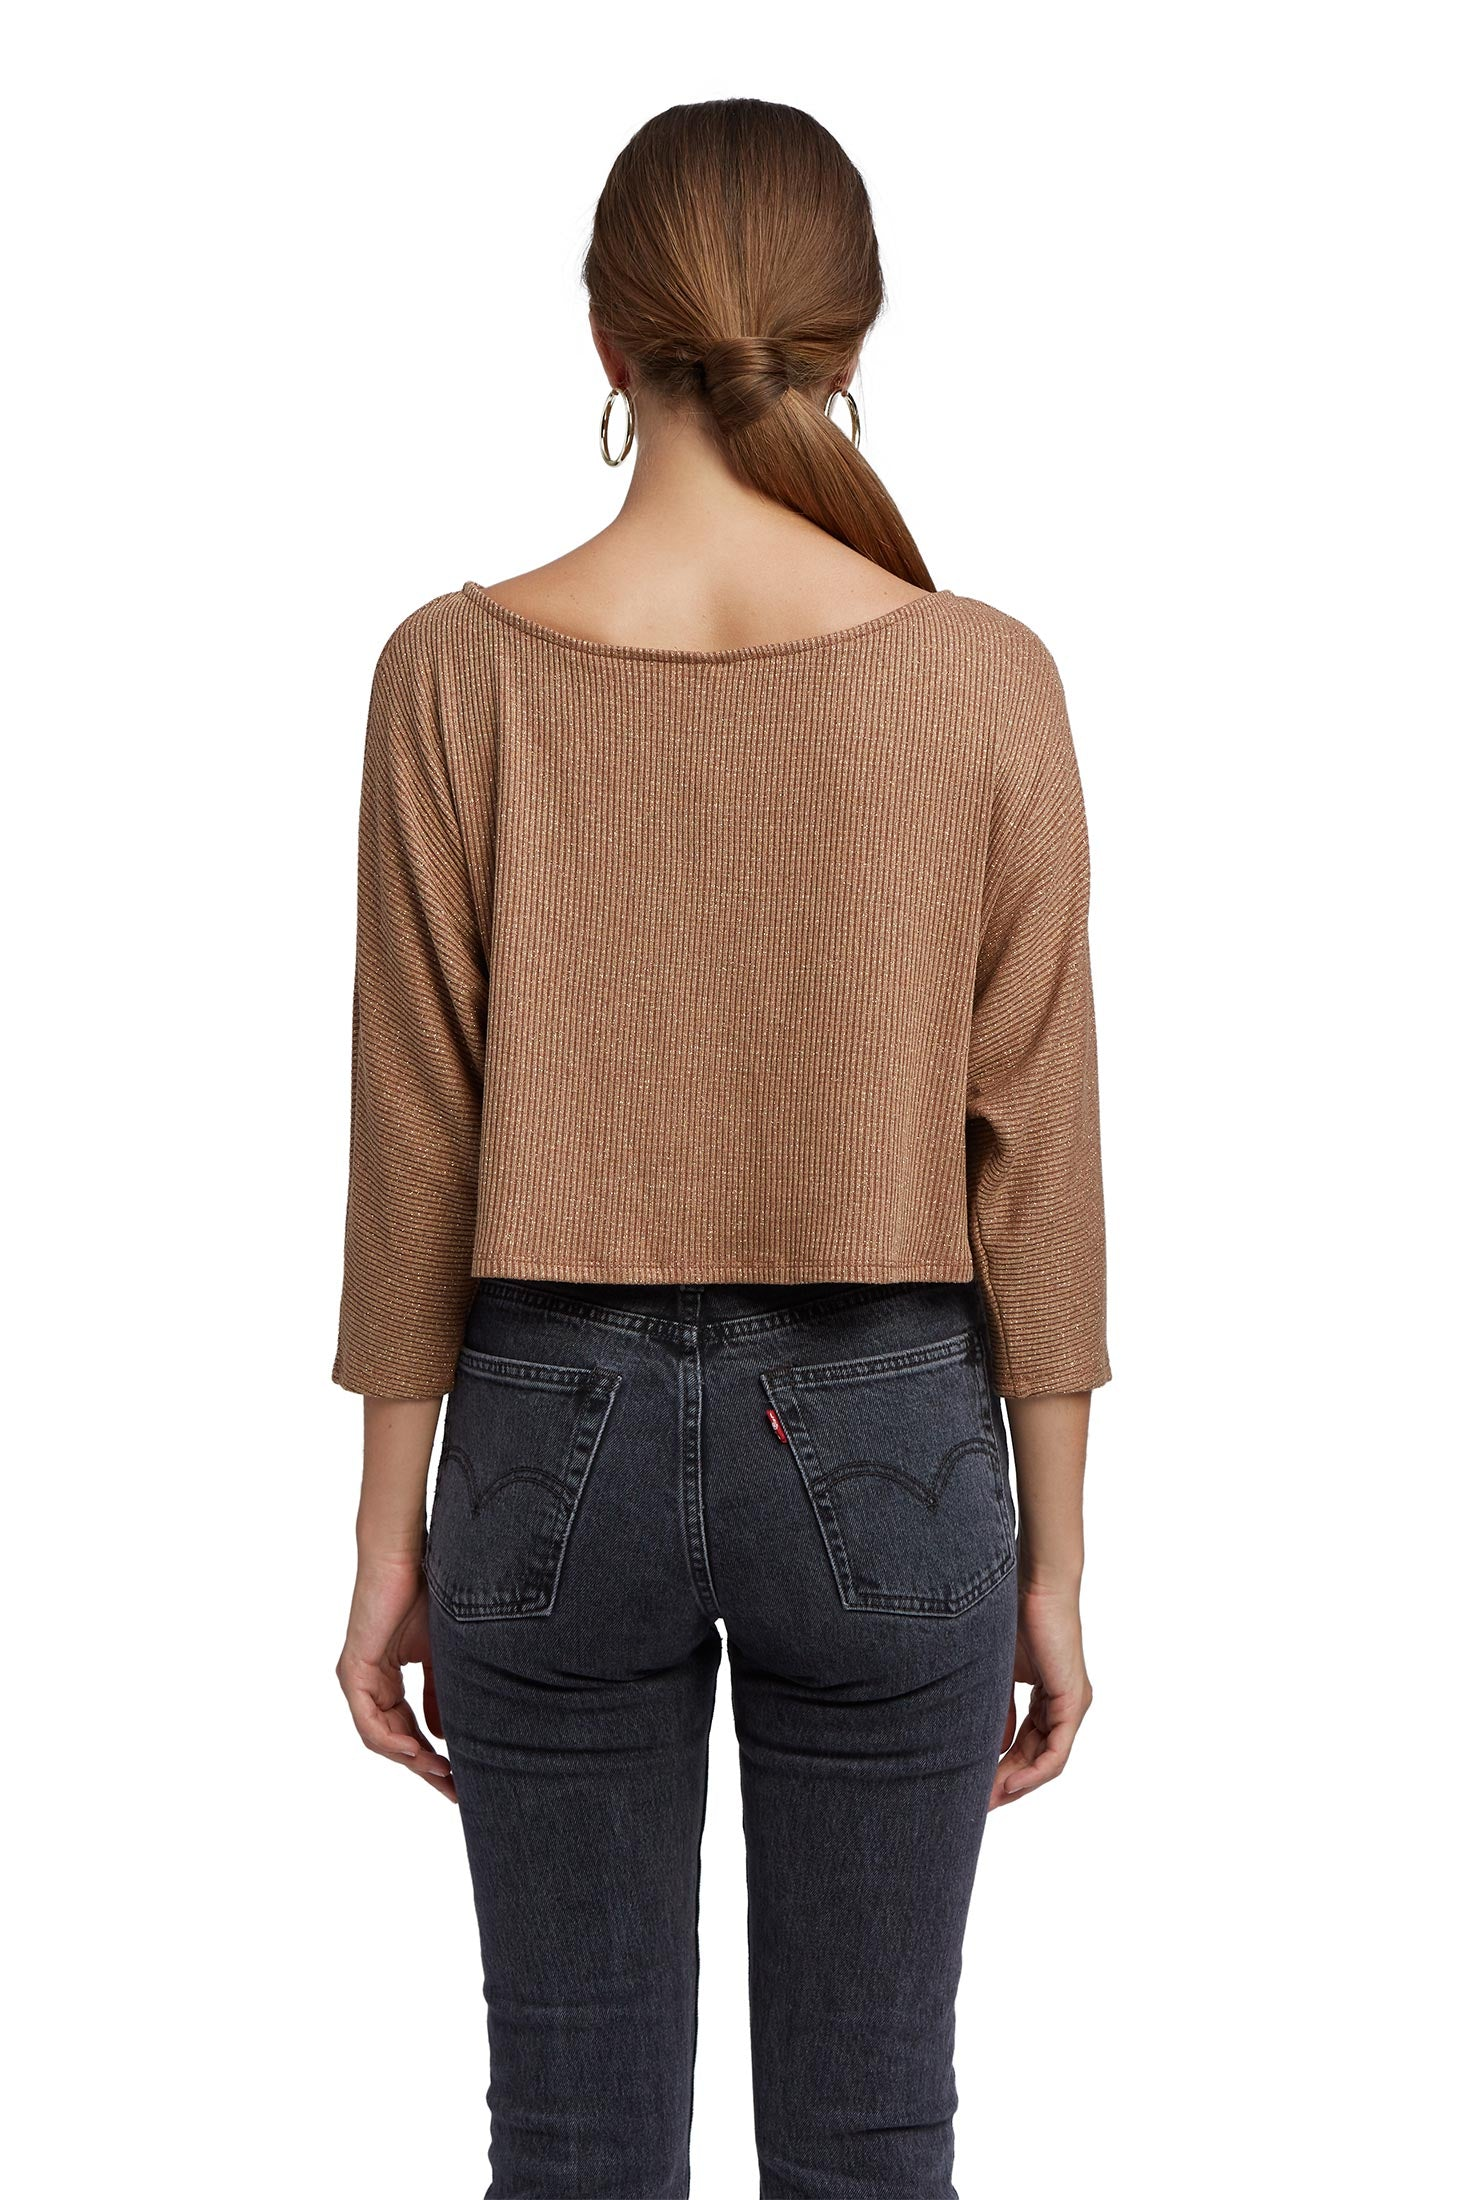 Metallic Rib Lilia Sweater - Caramel Gold